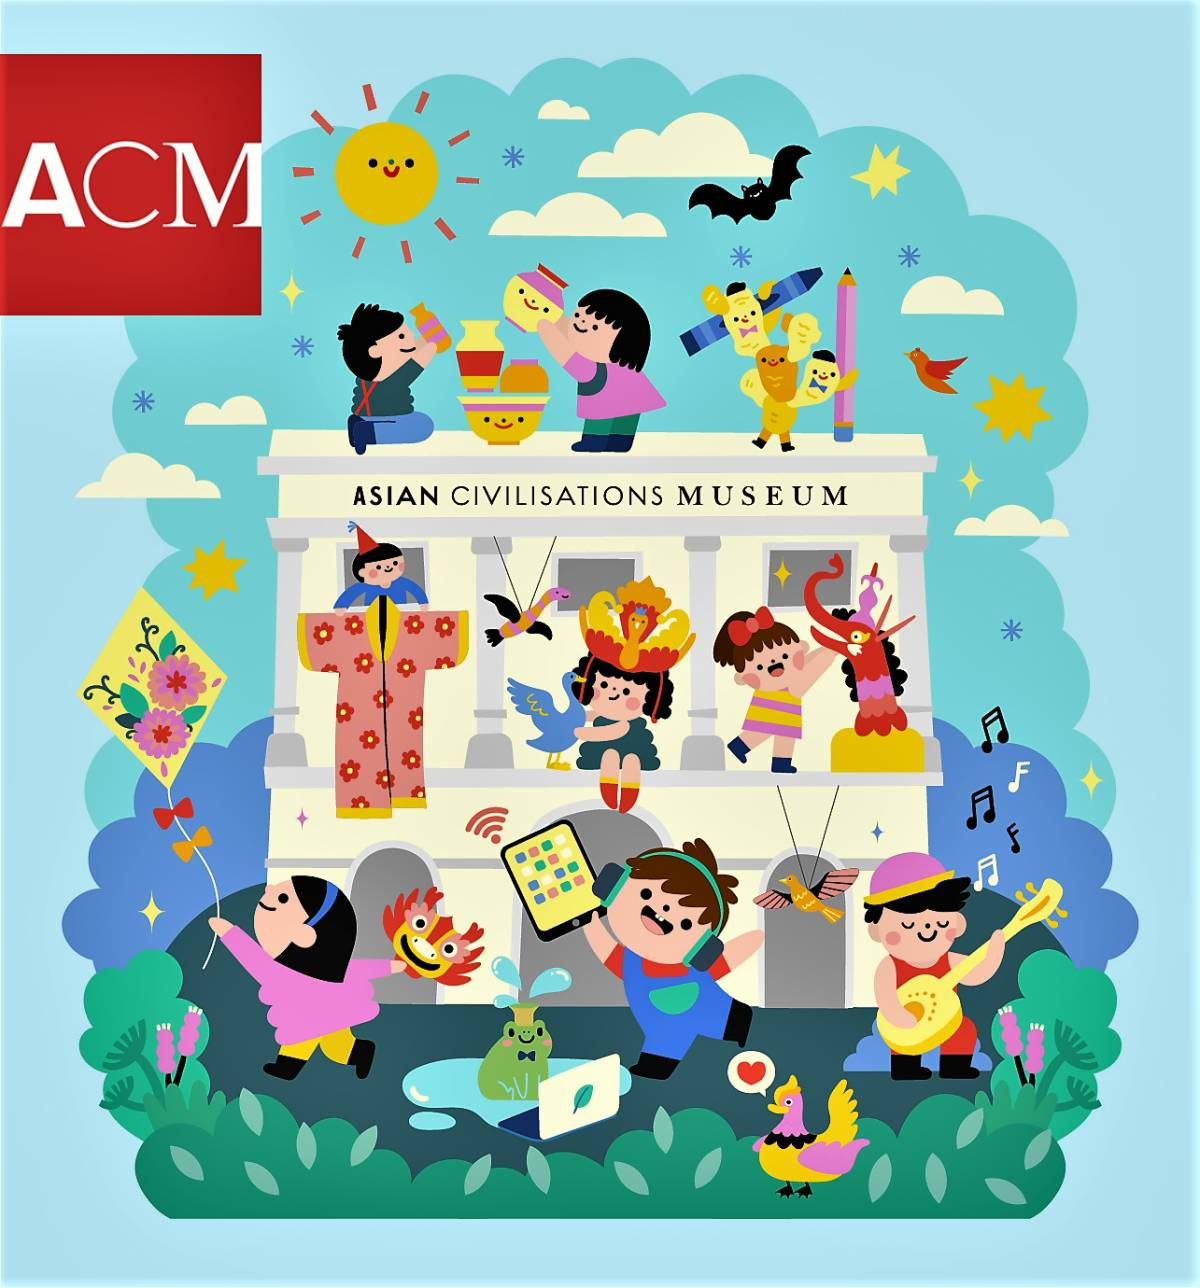 September & October '21 activities at the Asian Civilisations Museum